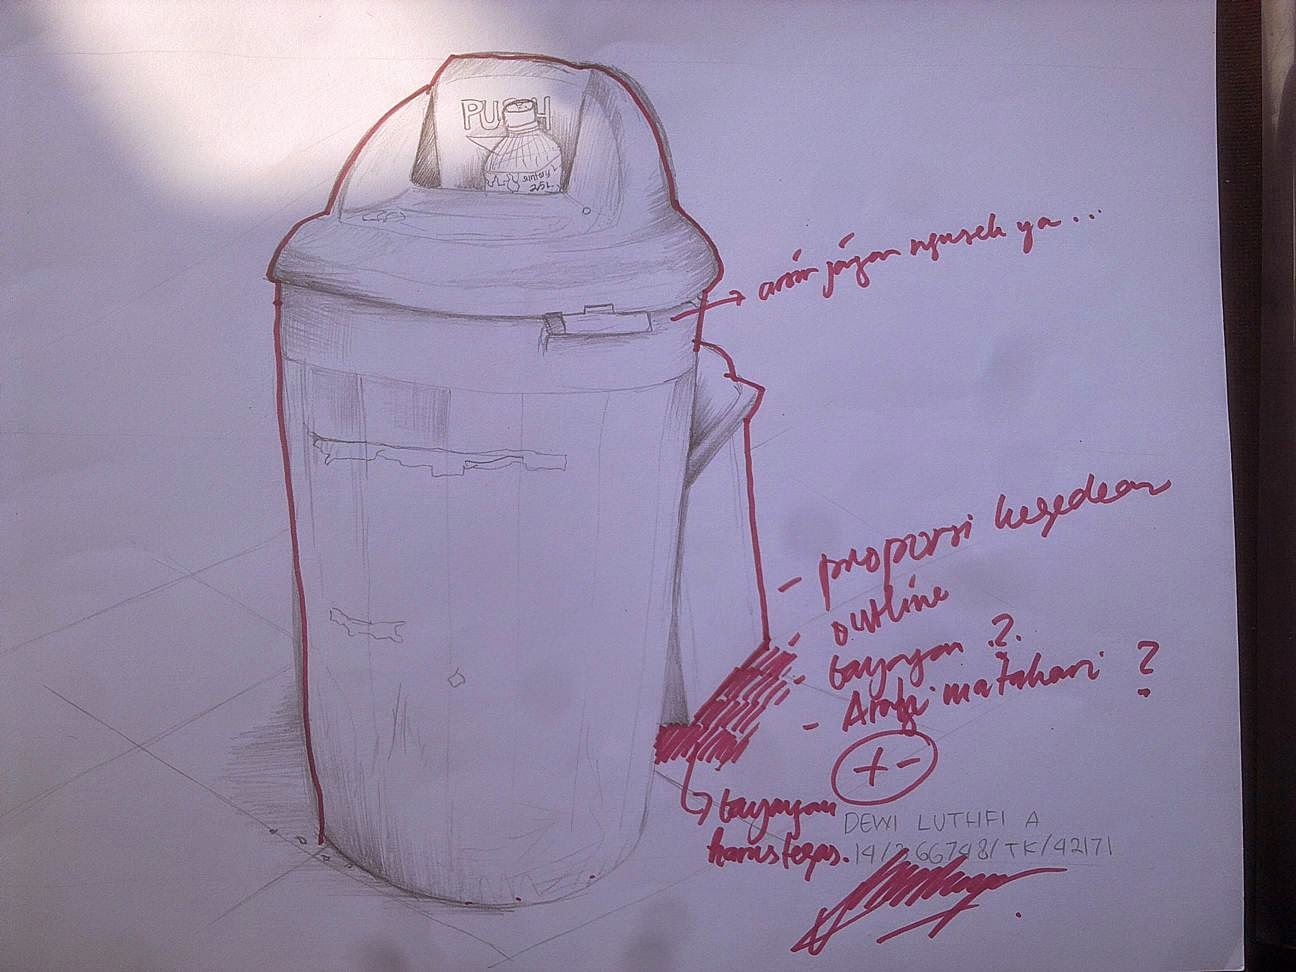 35 Ide Contoh Gambar Sketsa Tong Sampah Tea And Lead